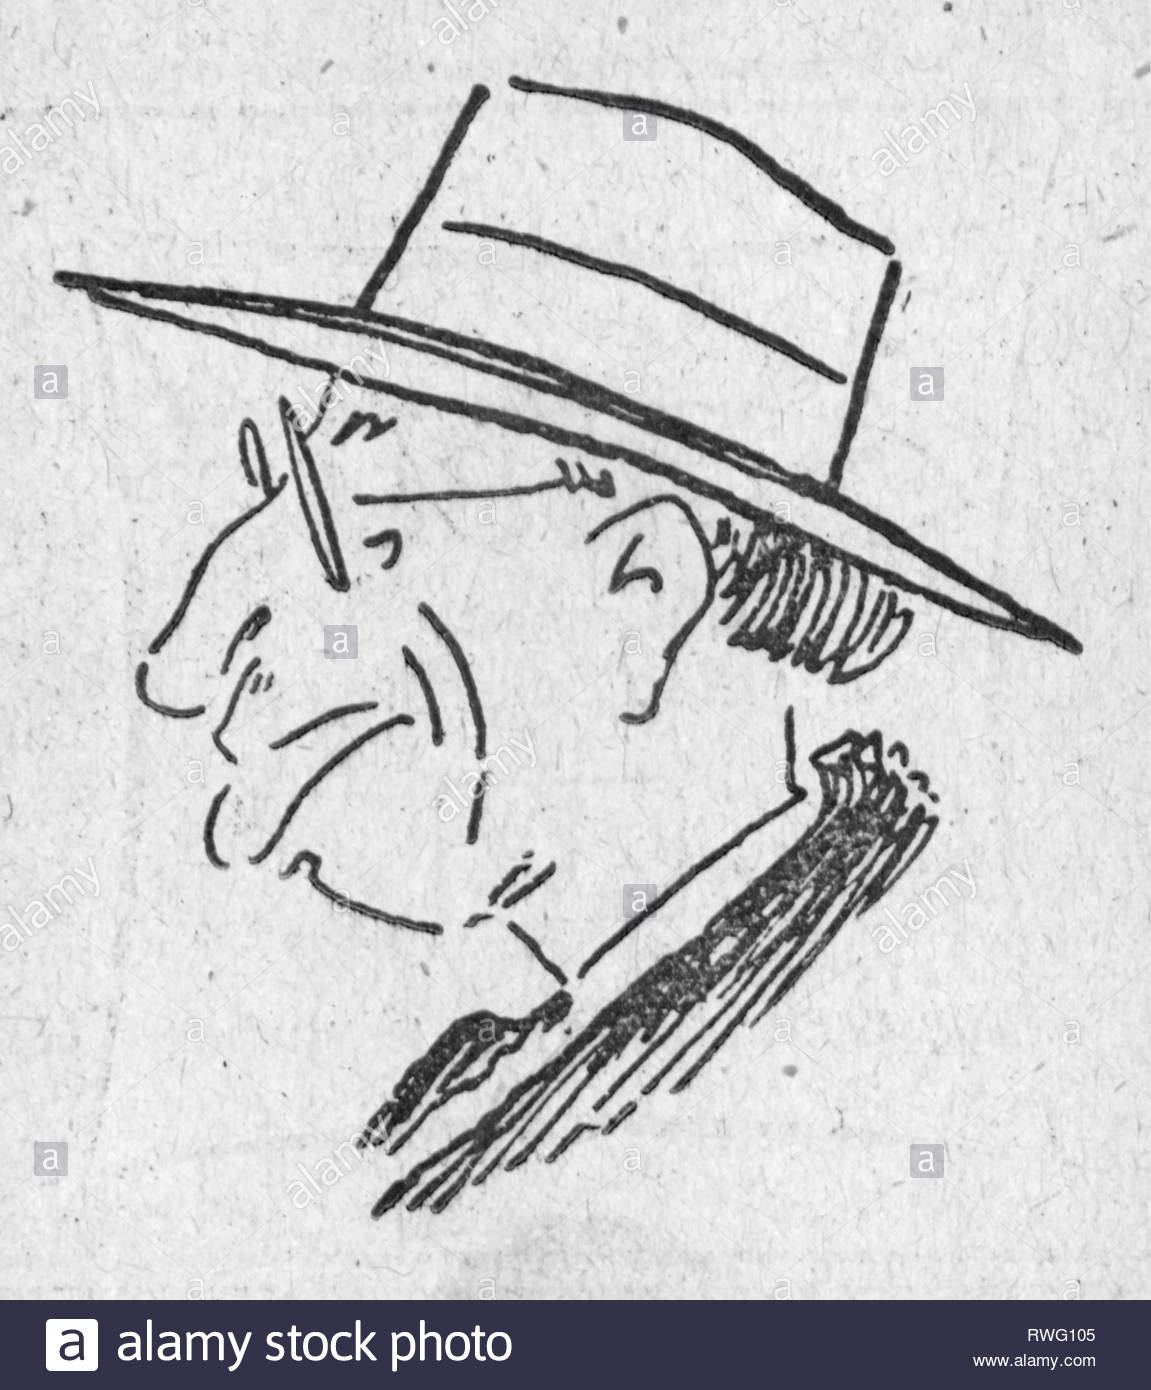 Celio, Enrico, 19.6.1889 - 23.2.1980, Swiss politician, portrait, caricature, drawing, 1948, Artist's Copyright must also be cleared - Stock Image